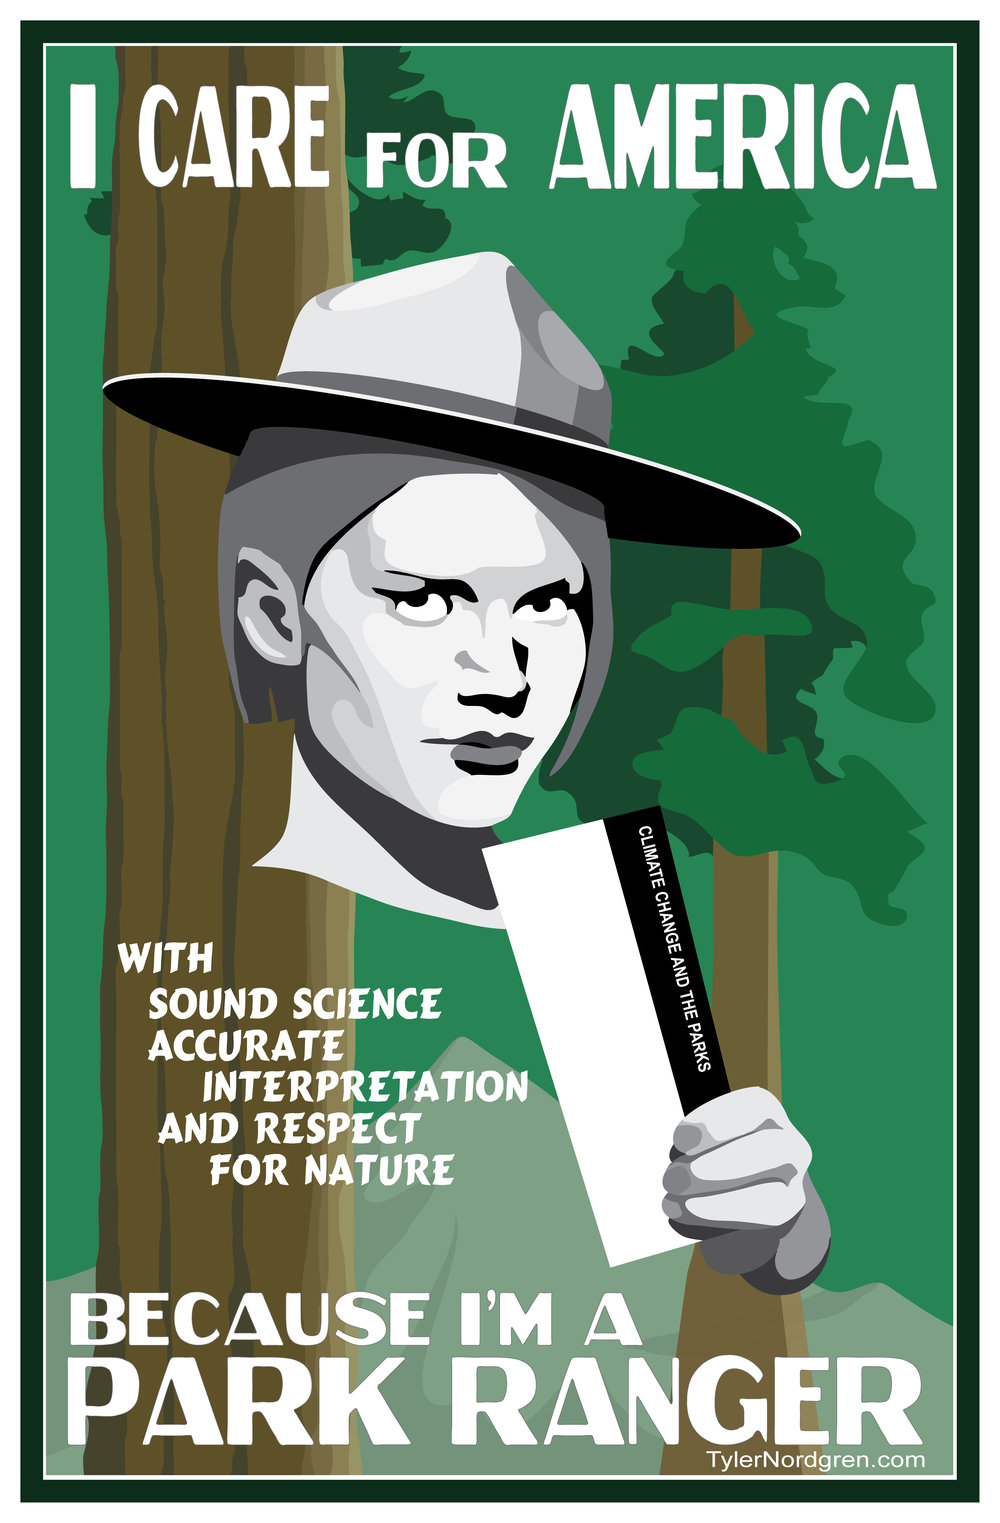 This posters is sized to be 12x18inches. Feel free to print it for yourself. Help park rangers help America.